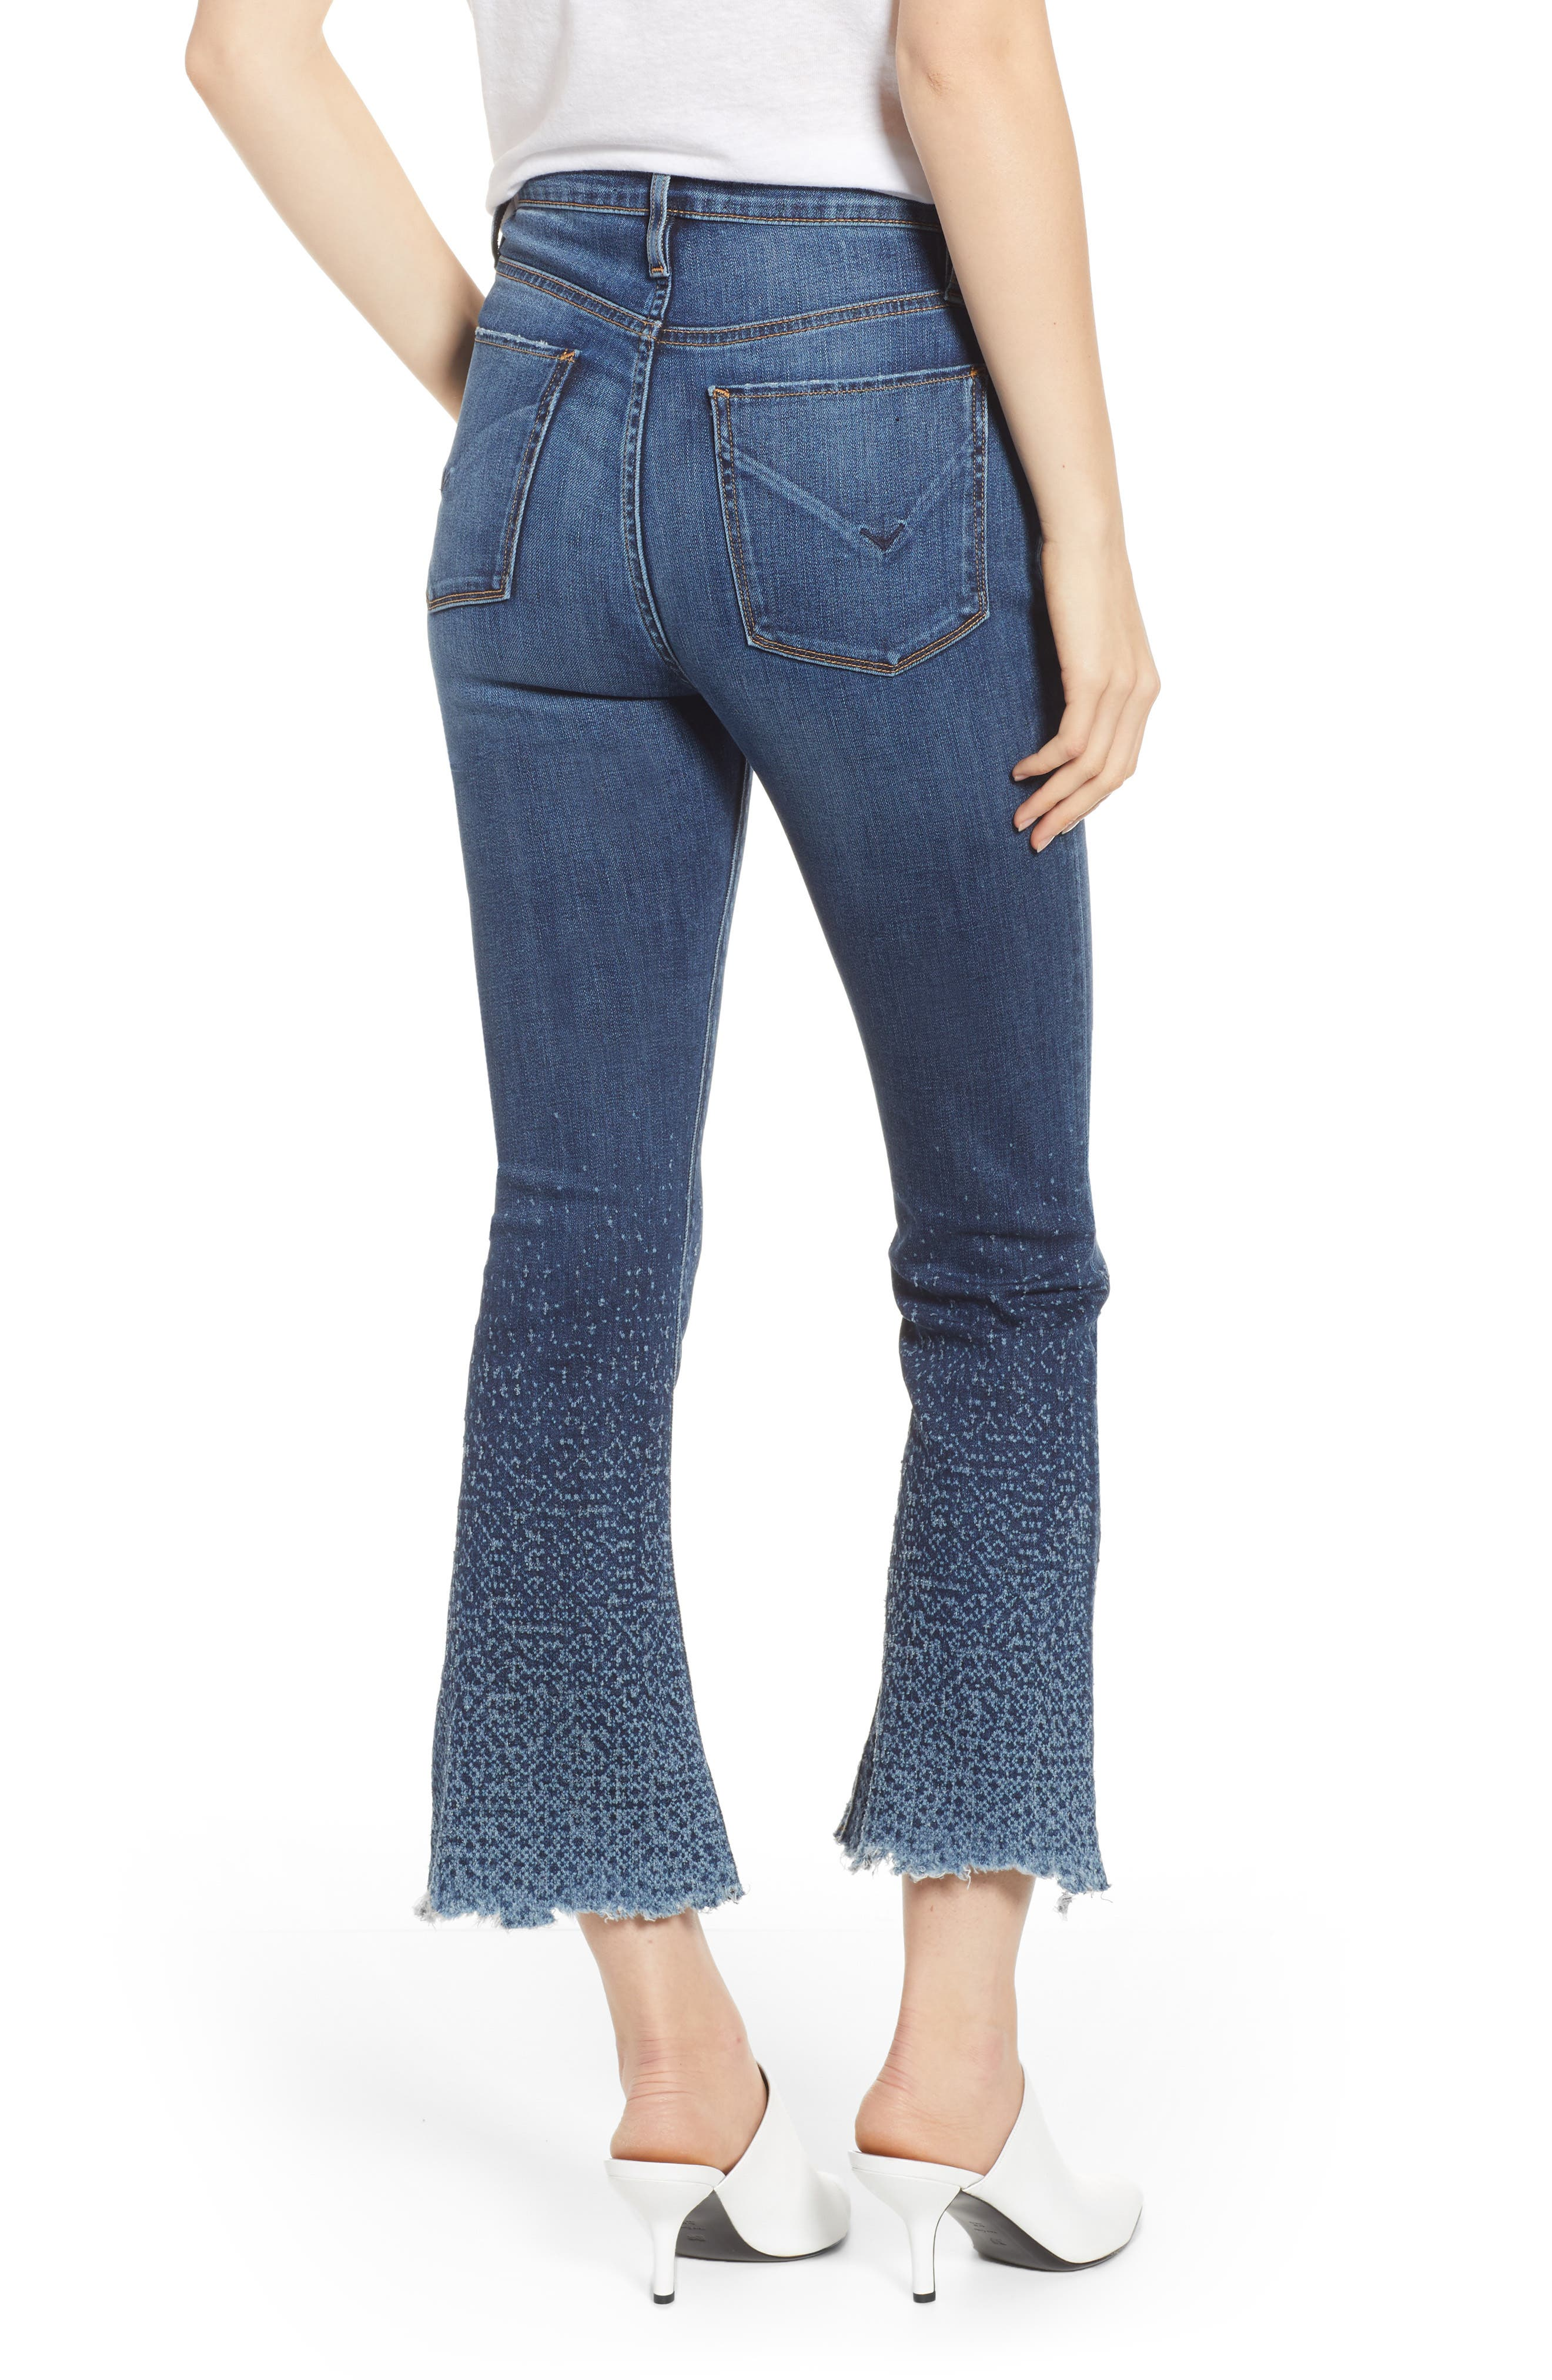 HUDSON JEANS, Holly High Waist Crop Flare Jeans, Alternate thumbnail 2, color, 420